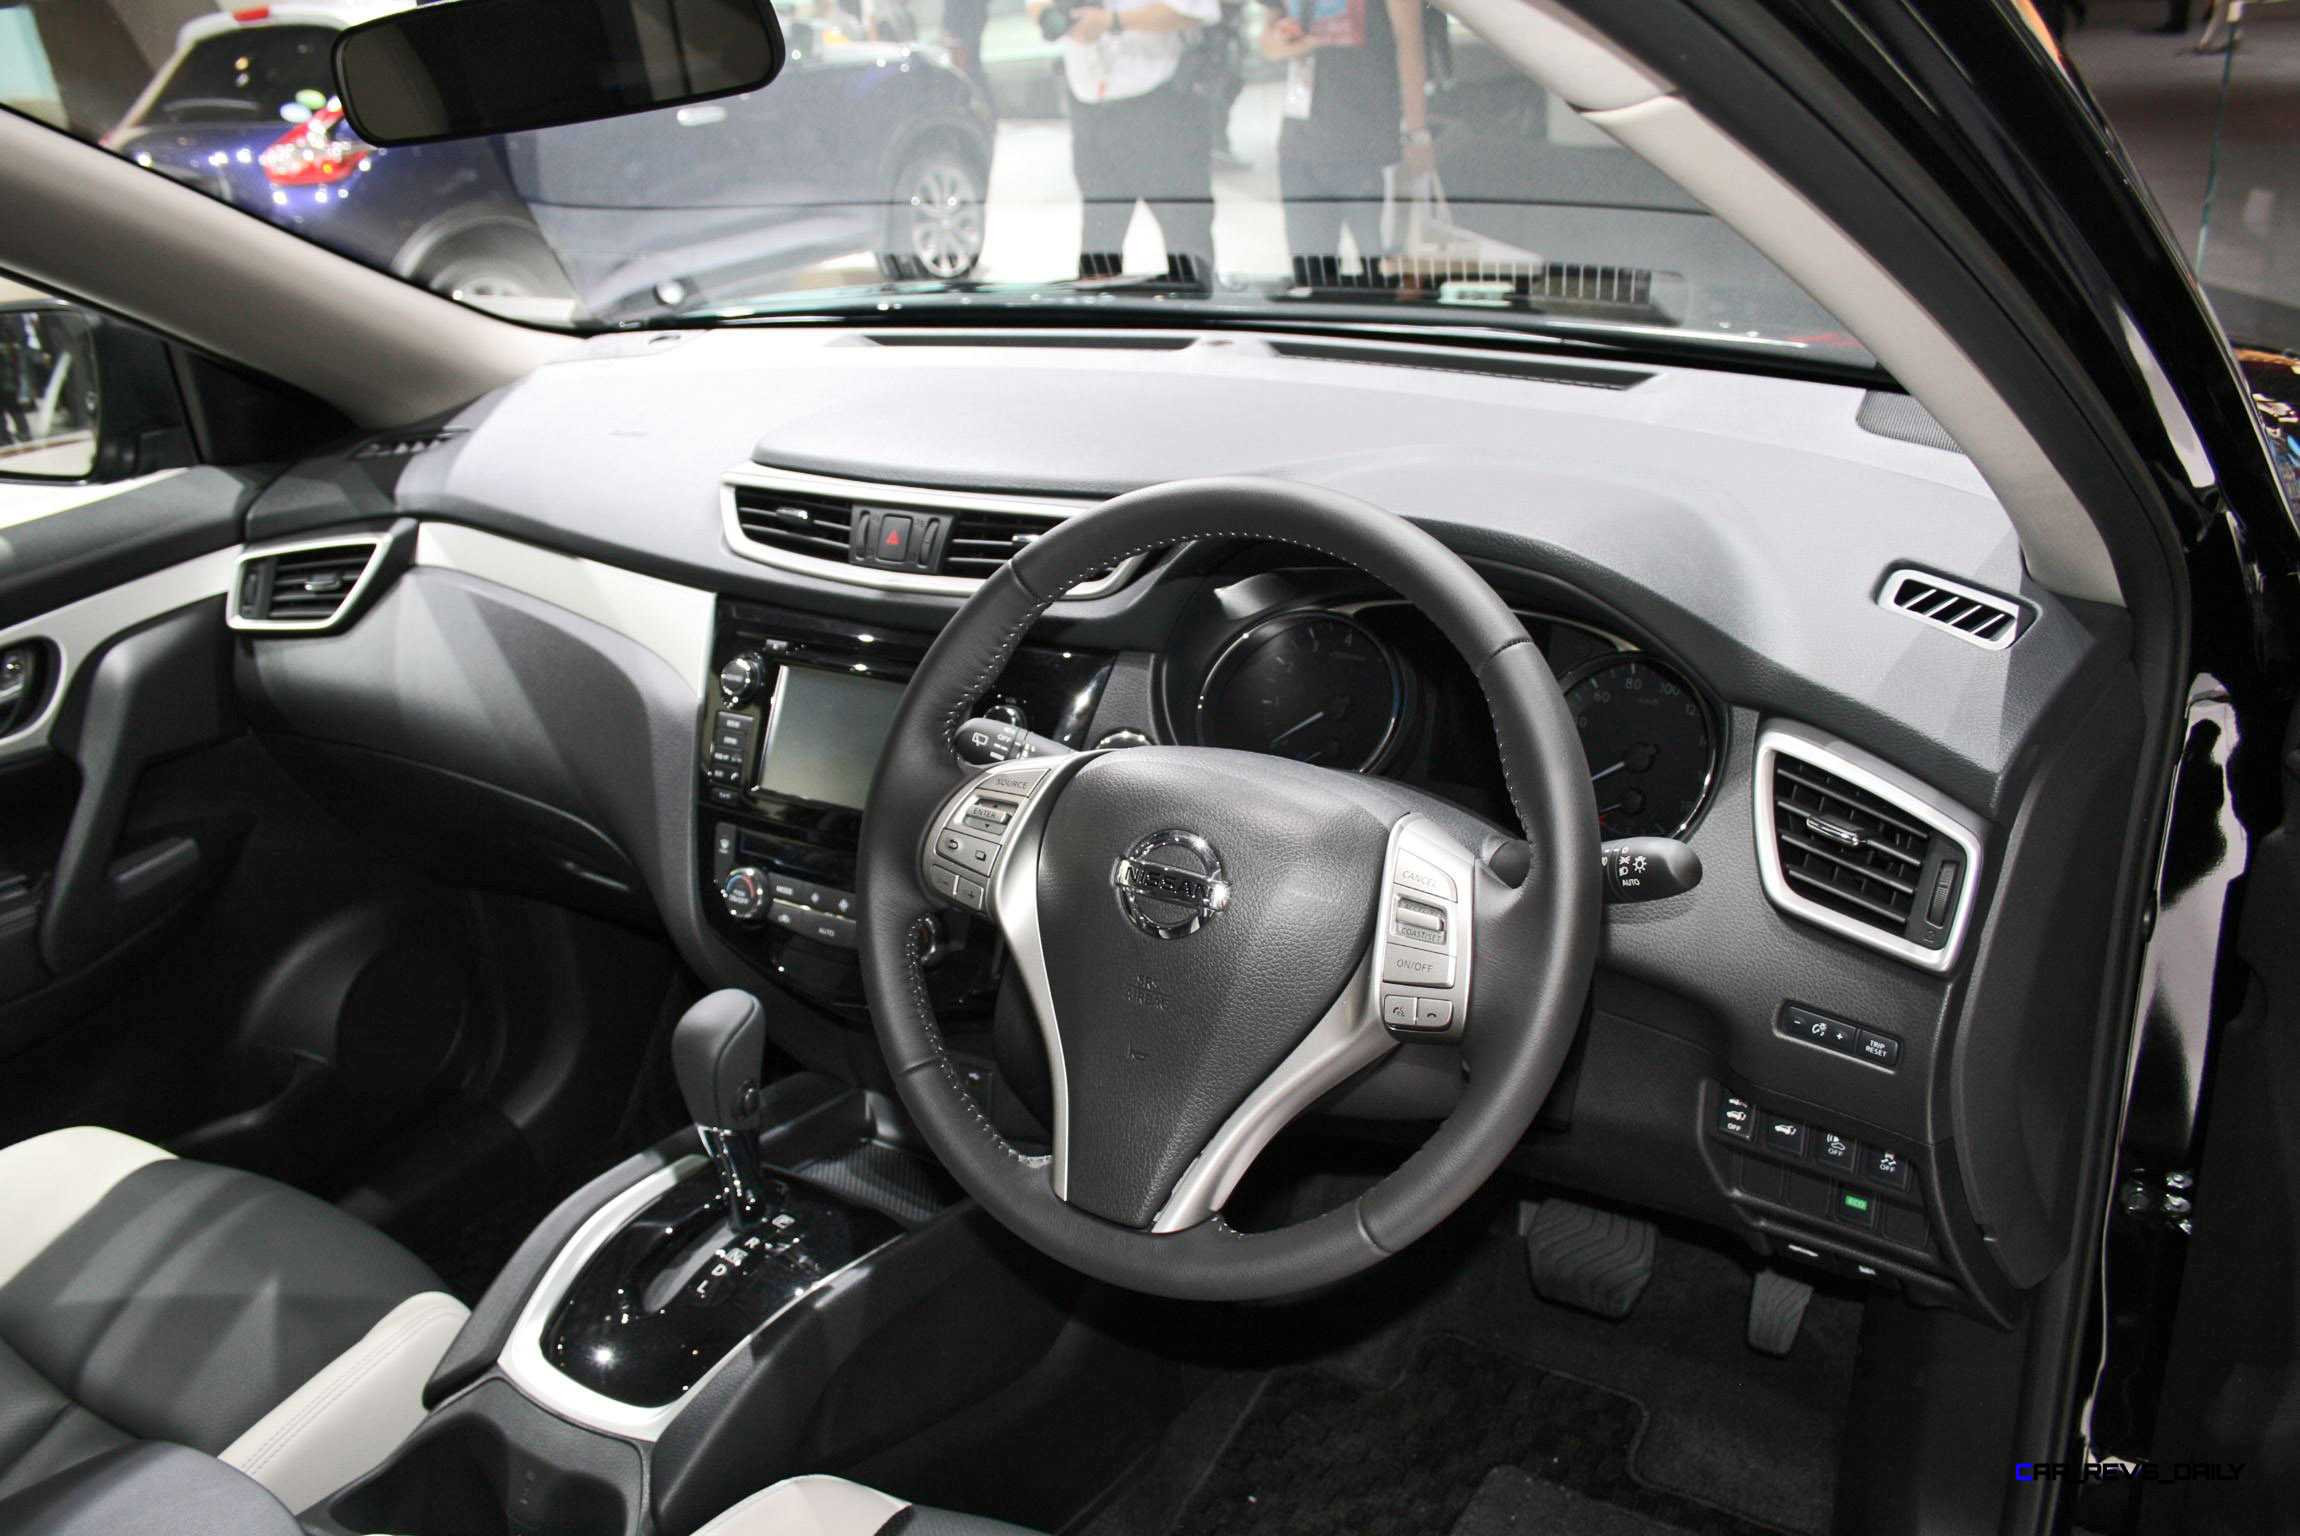 Nissan-X-Trail-Hybrid-7-copy.jpg